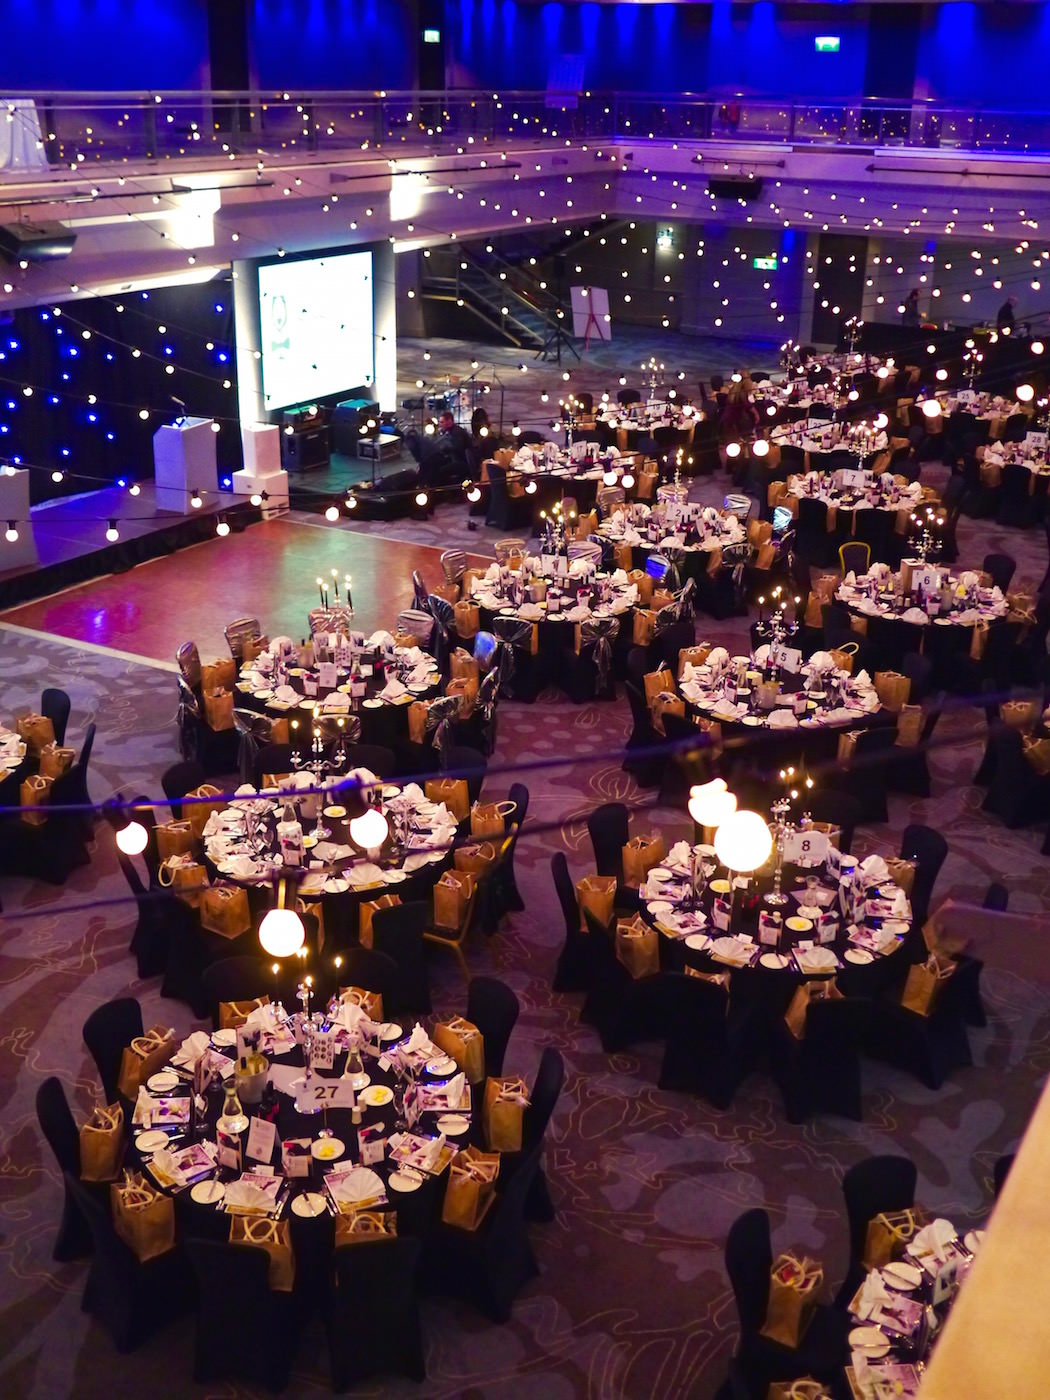 The view from above, pre-awards